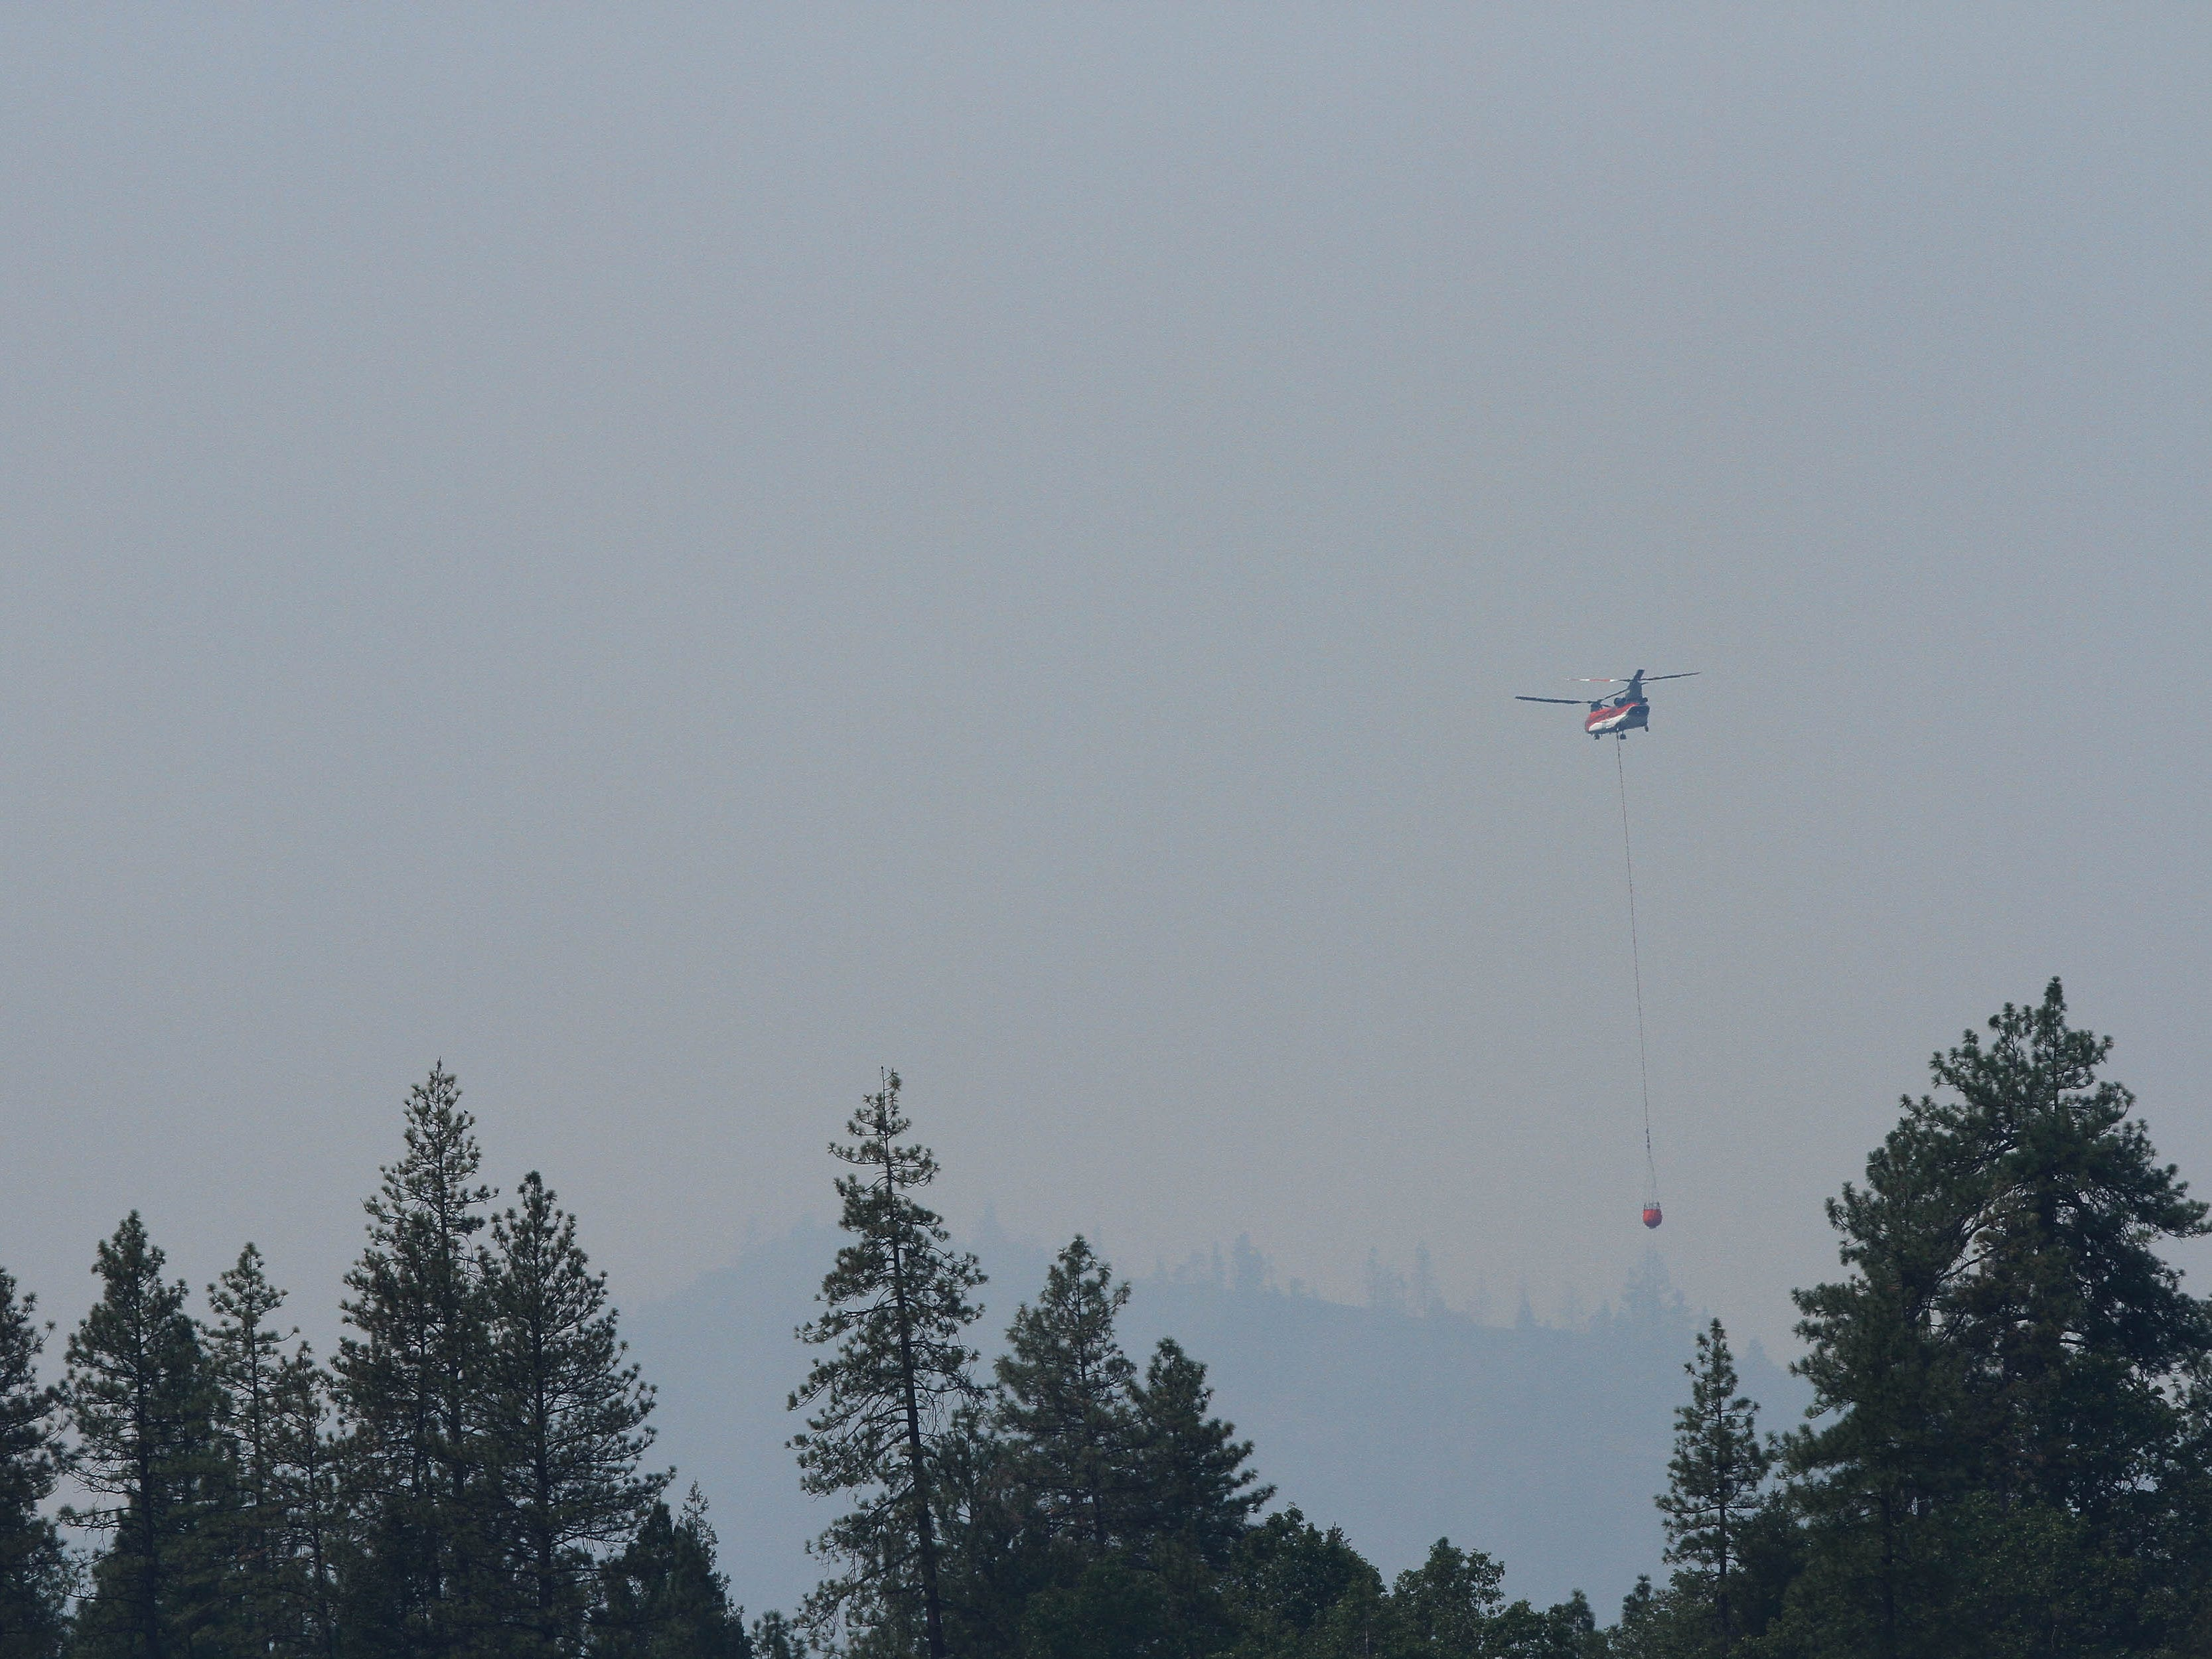 In the northeast section by Bollibokka Club along McCloud River on Saturday, Aug. 18, 2018 a helicopter drops water on a hot spot on the ridge. Helicopters have been collecting water from Lake Shasta at Hirz Bay area to drop on the fire. (Special to the Record Searchlight/Hung T. Vu)